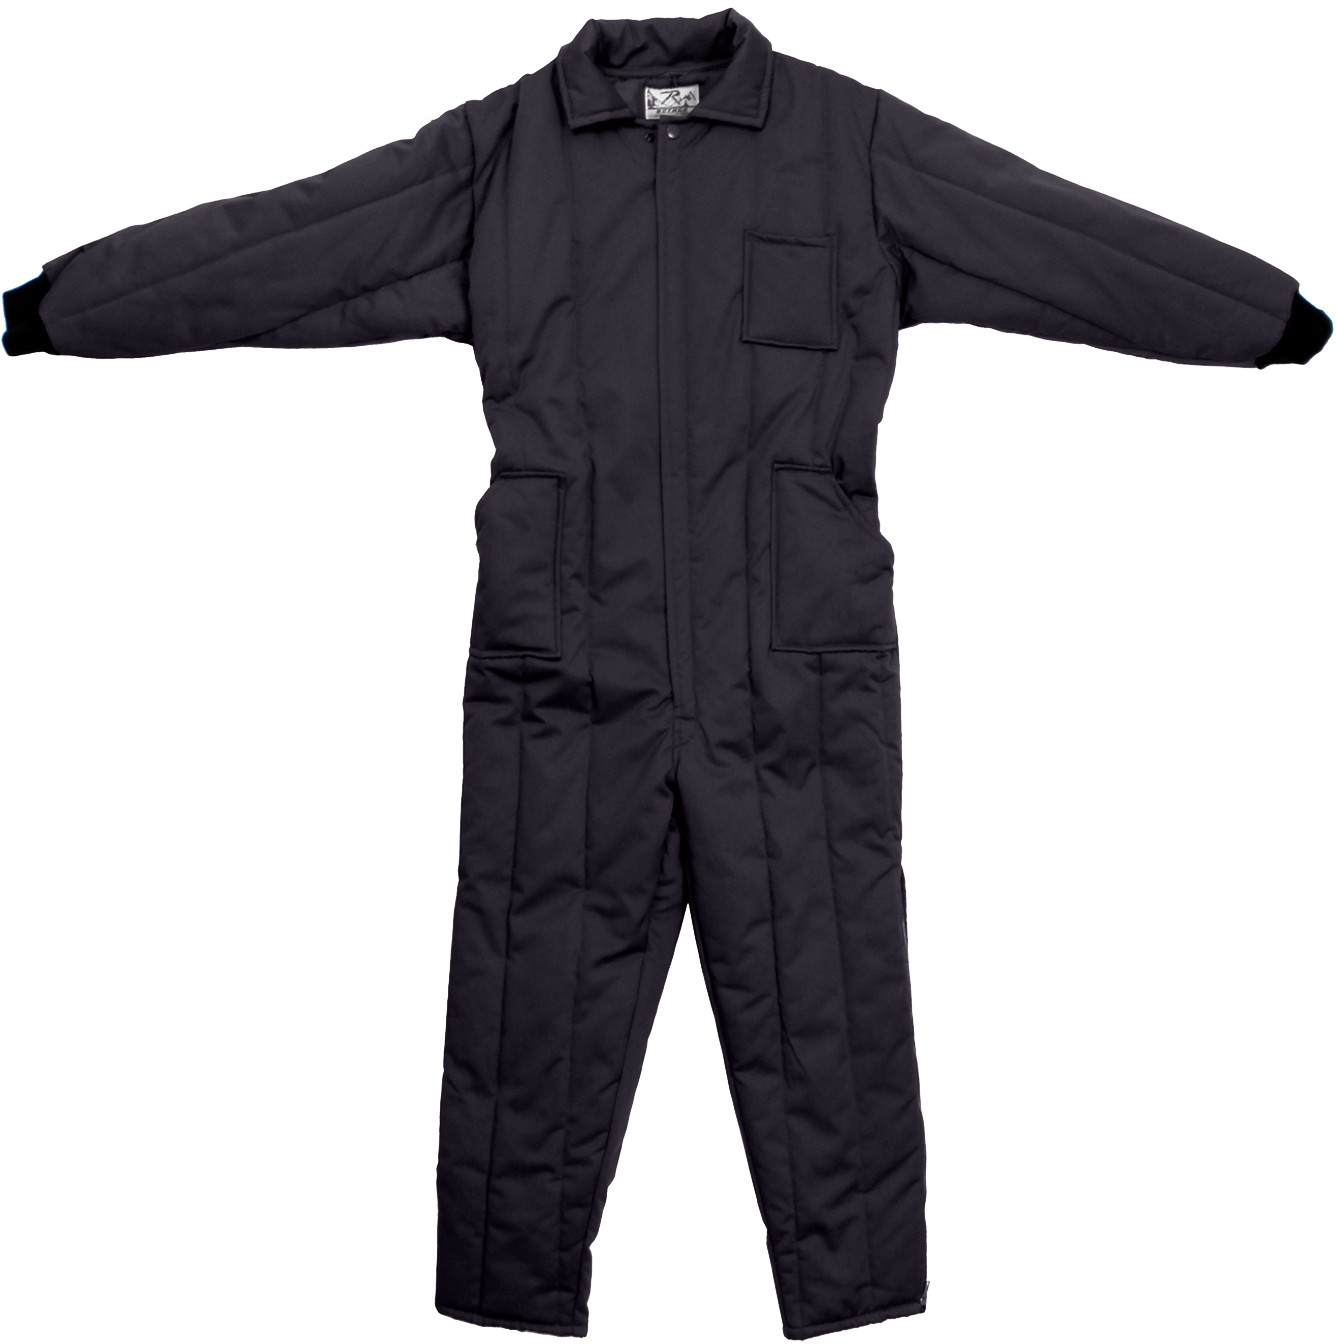 More Views. Black Cold Weather Insulated Coverall Jumpsuit ... a11193f32d51